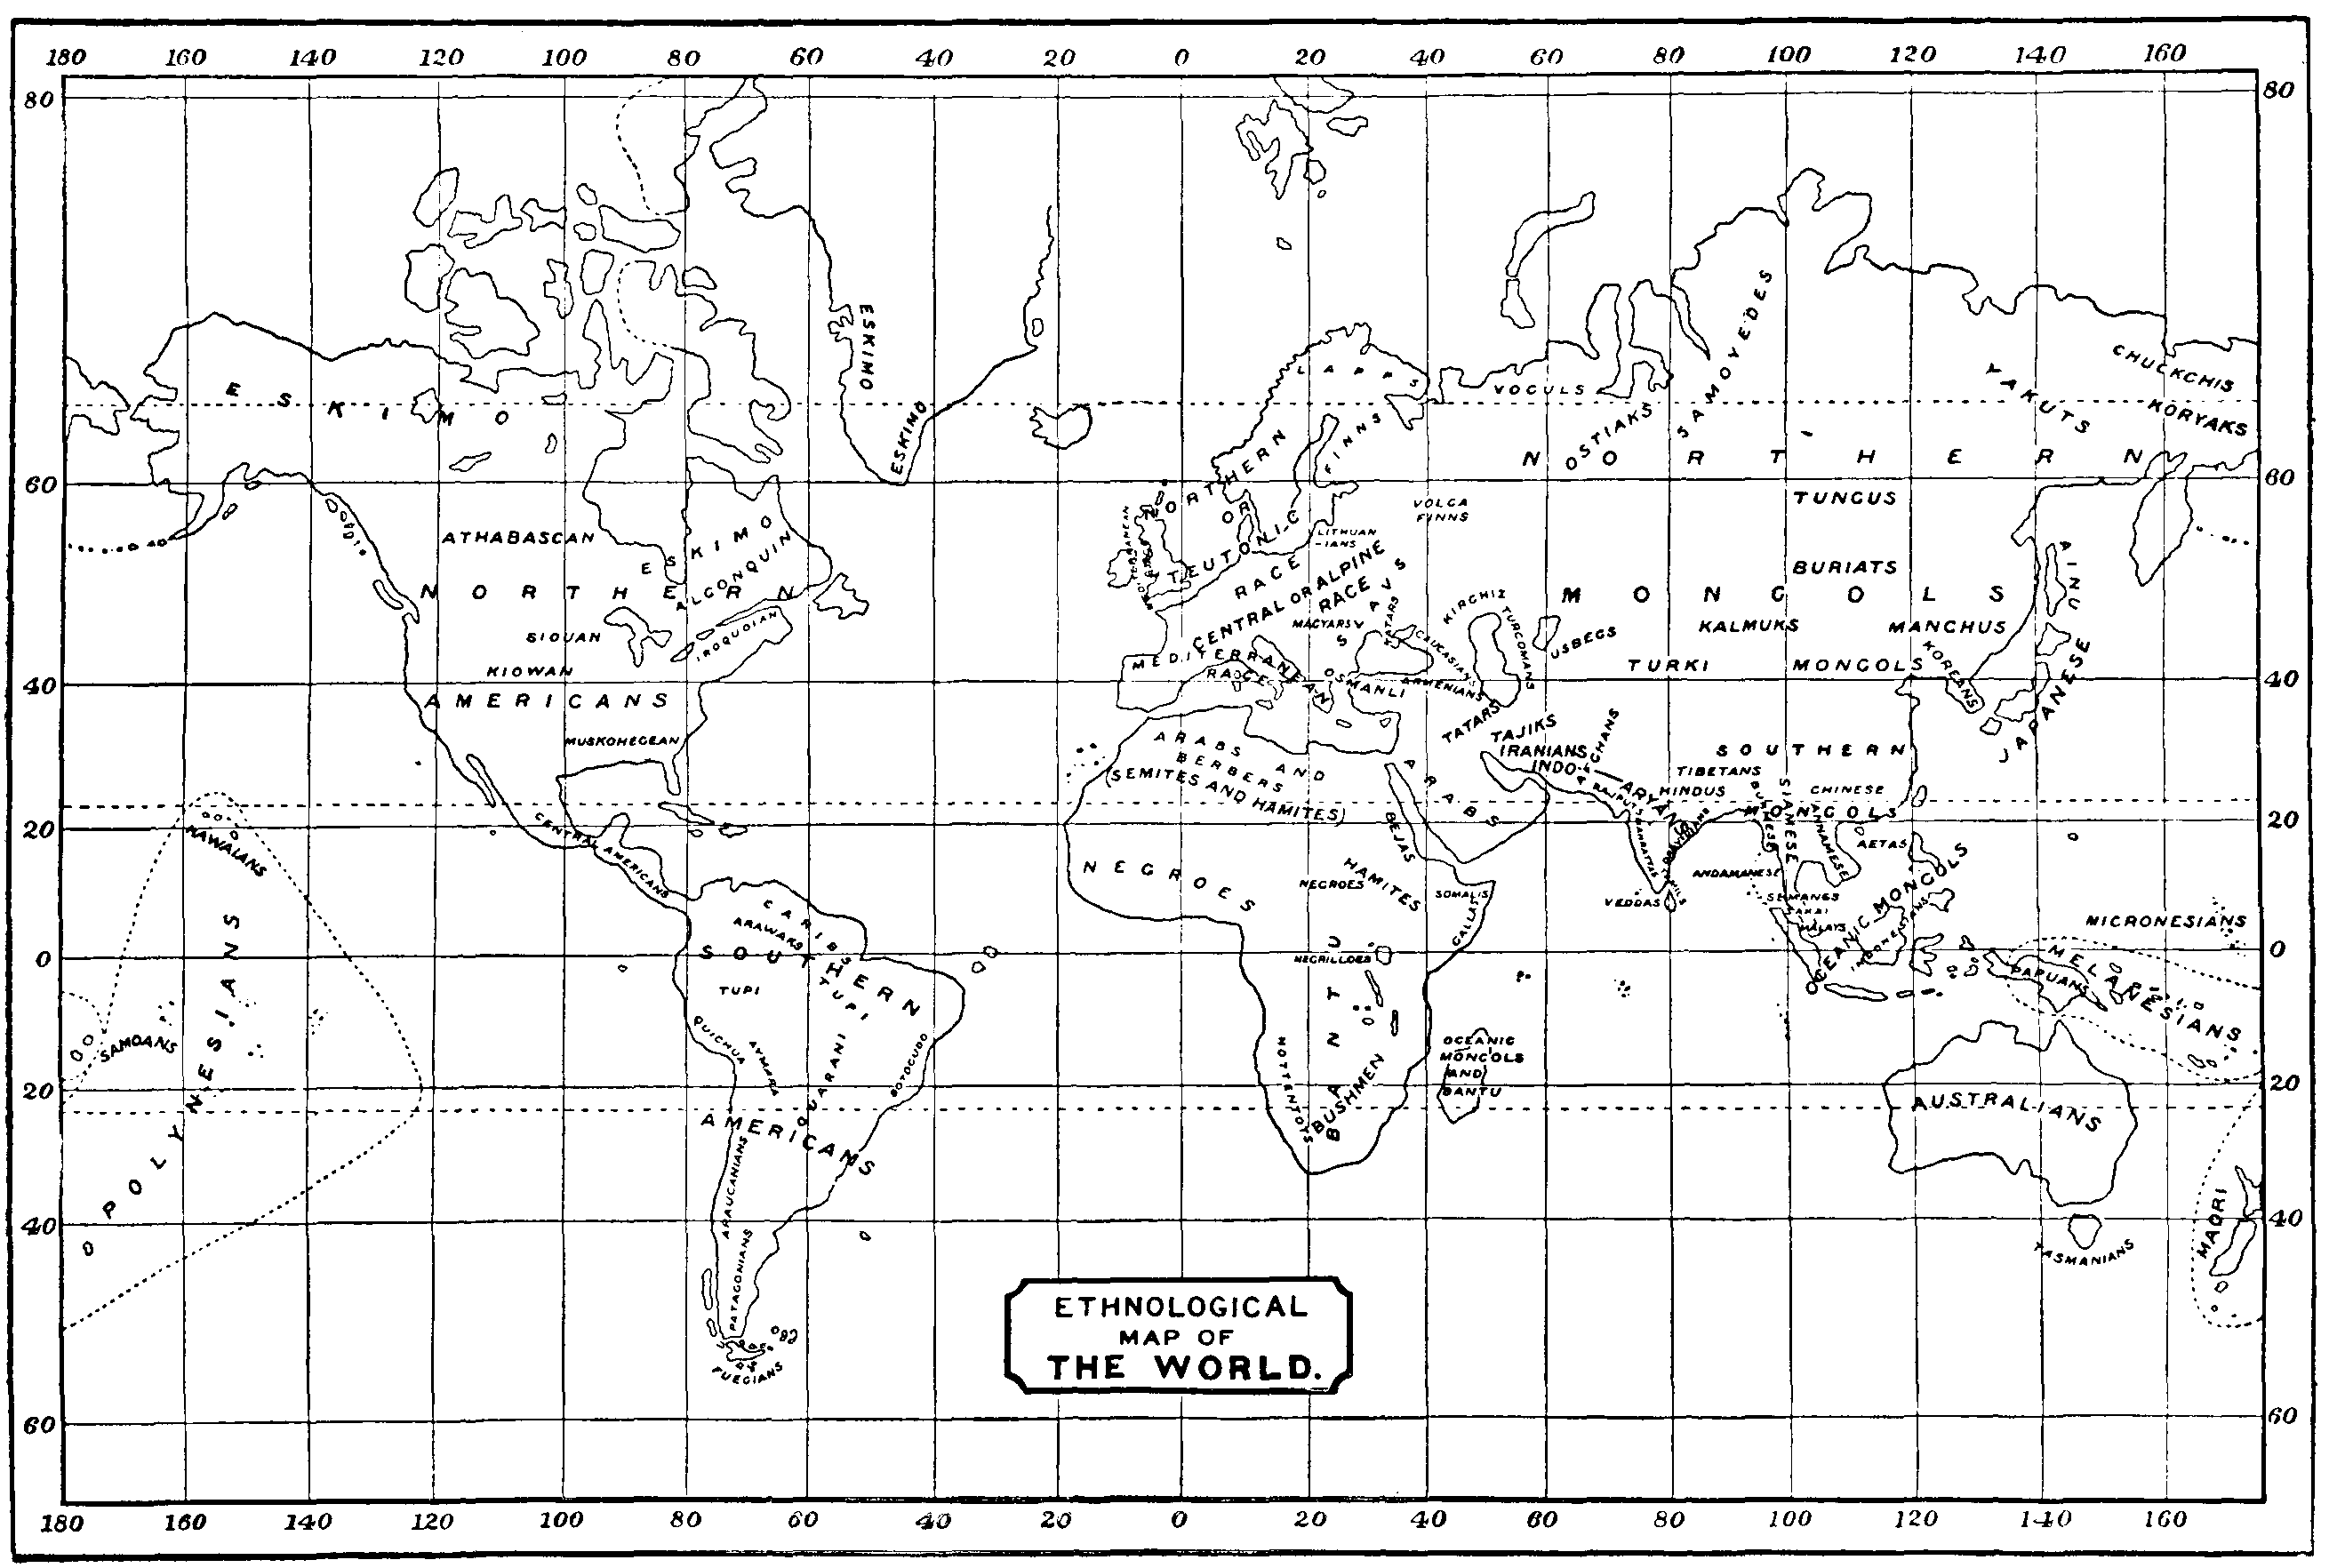 ethnological map of the world